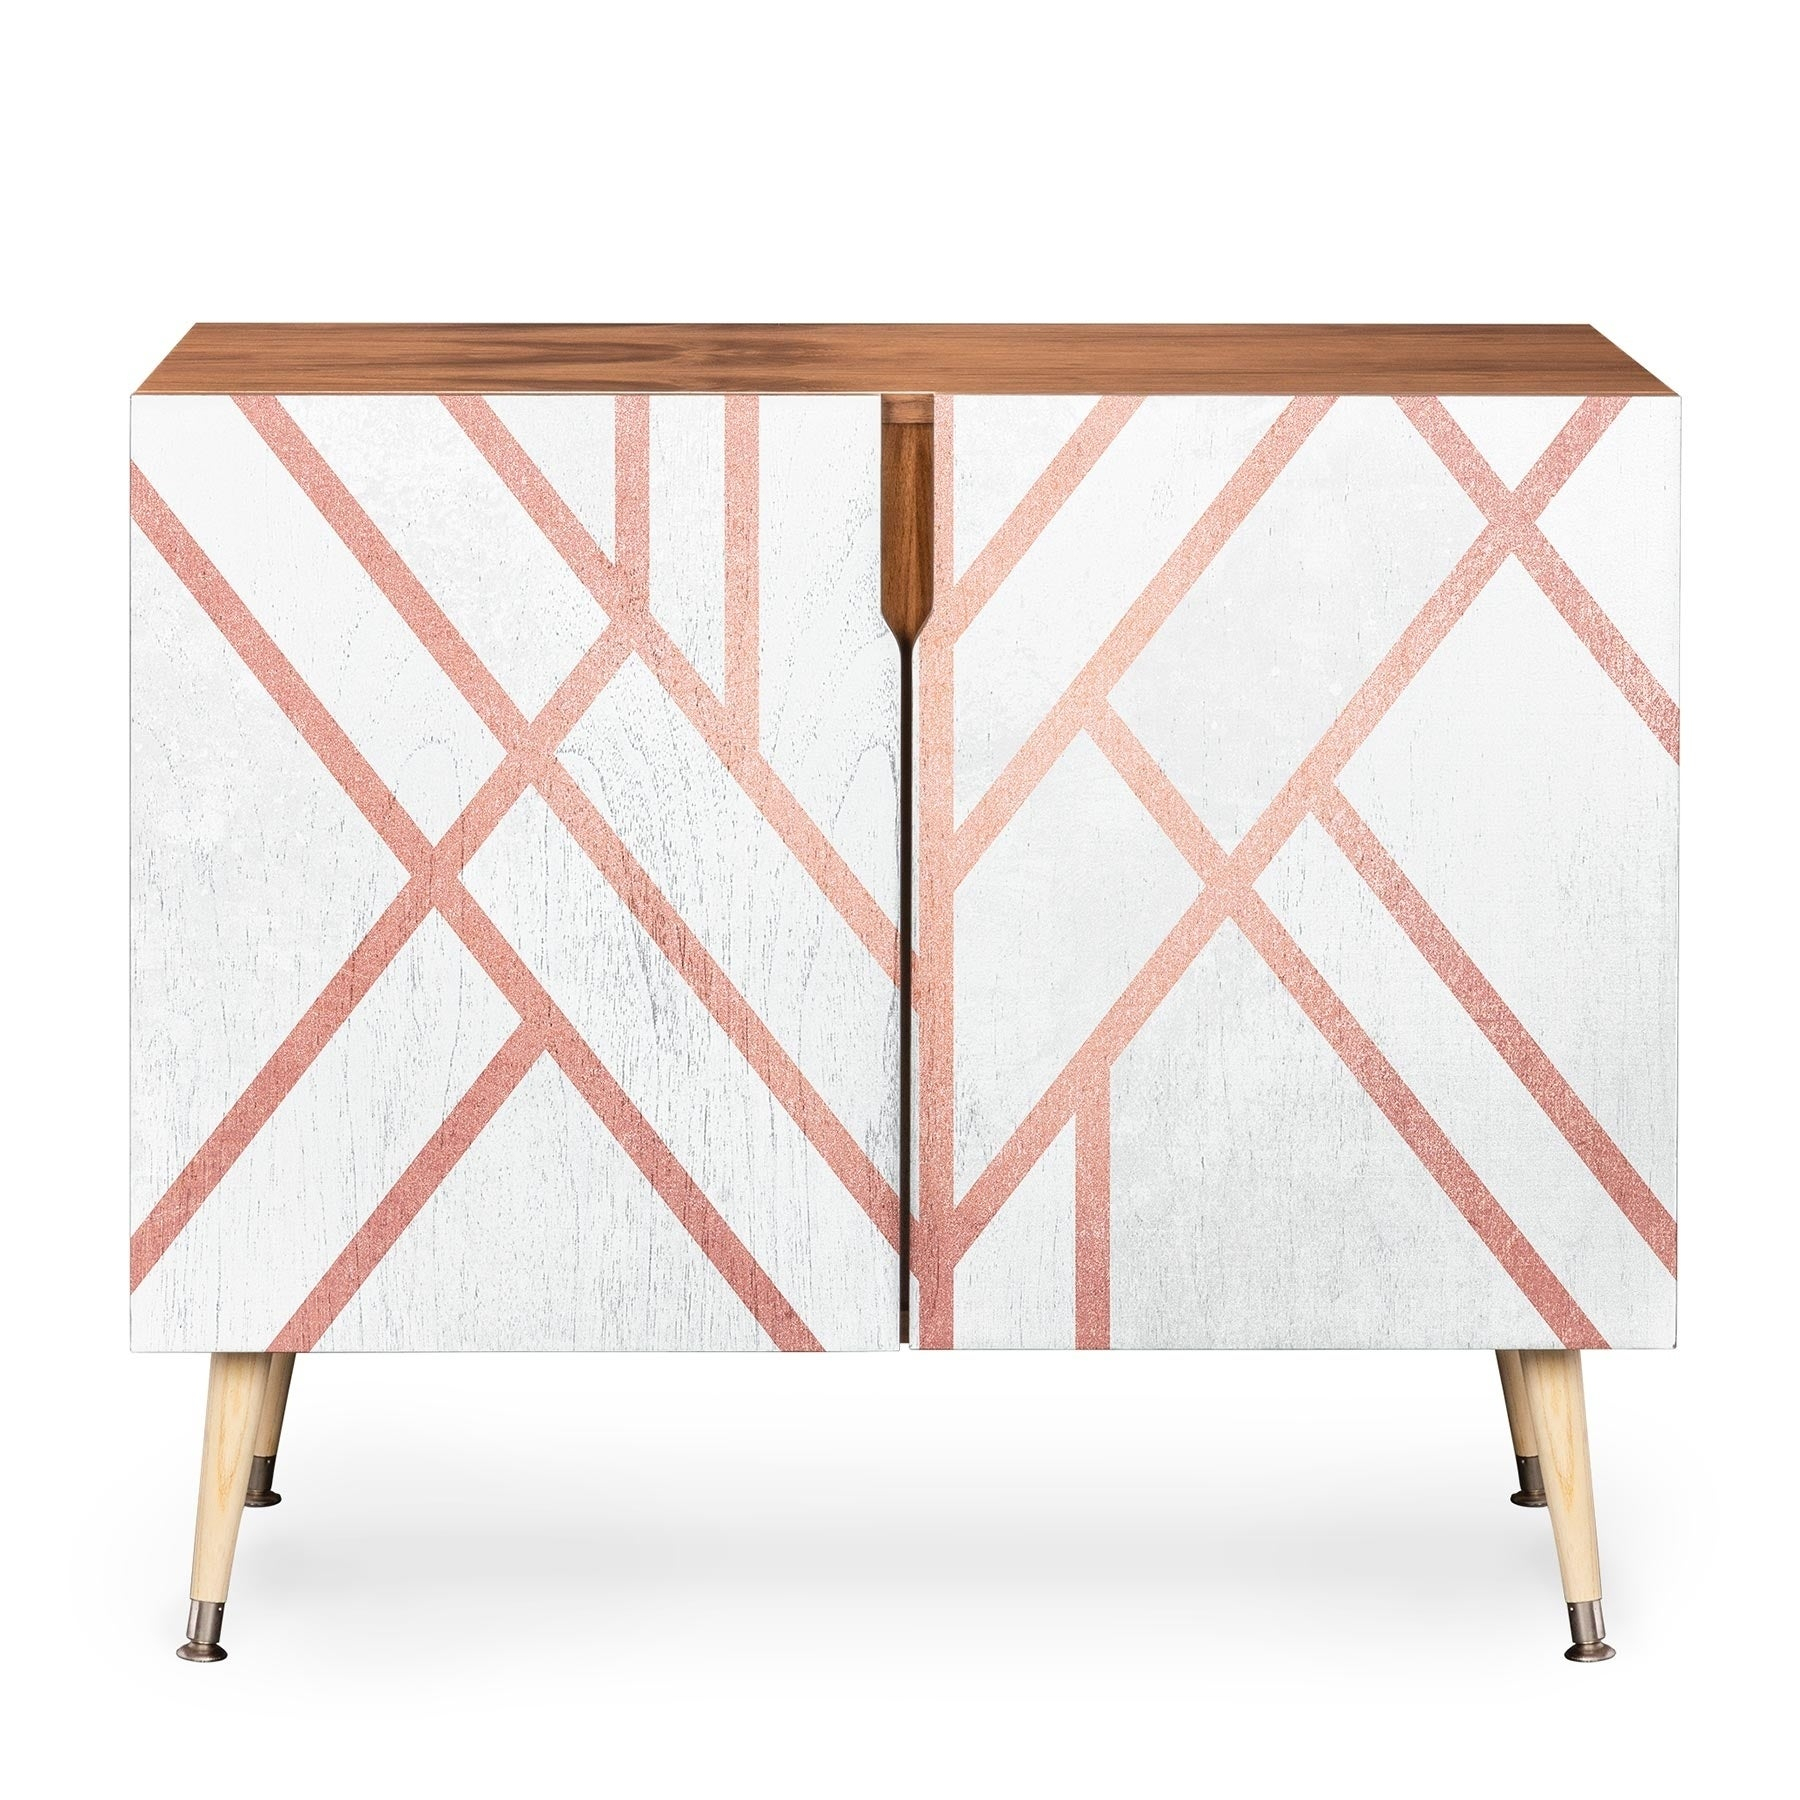 Deny Designs Pink And White Geometric Credenza (Birch Or Walnut, 3 Leg  Options) inside Line Geo Credenzas (Image 10 of 30)